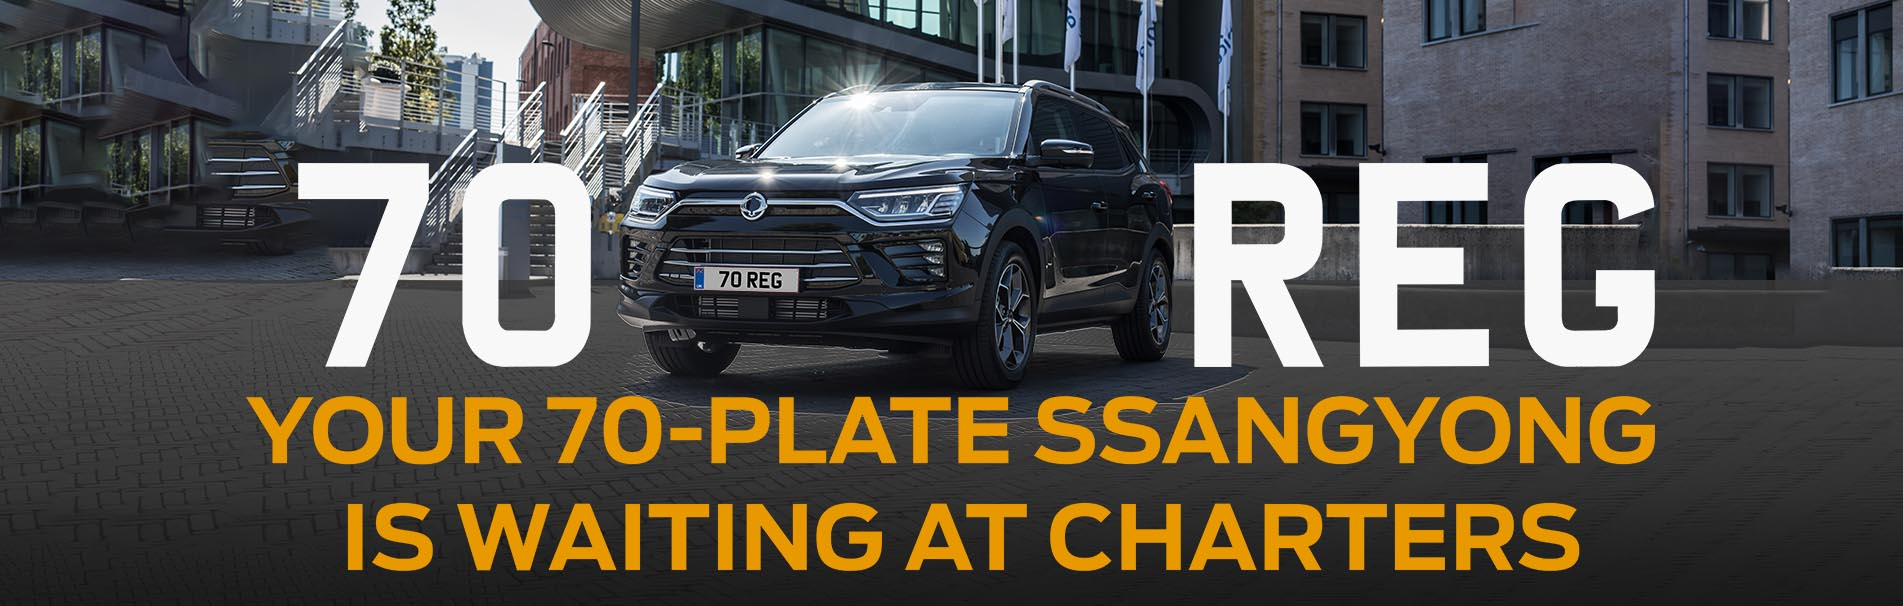 order-your-70-plate-ssangyong-from-charters-reading-sli